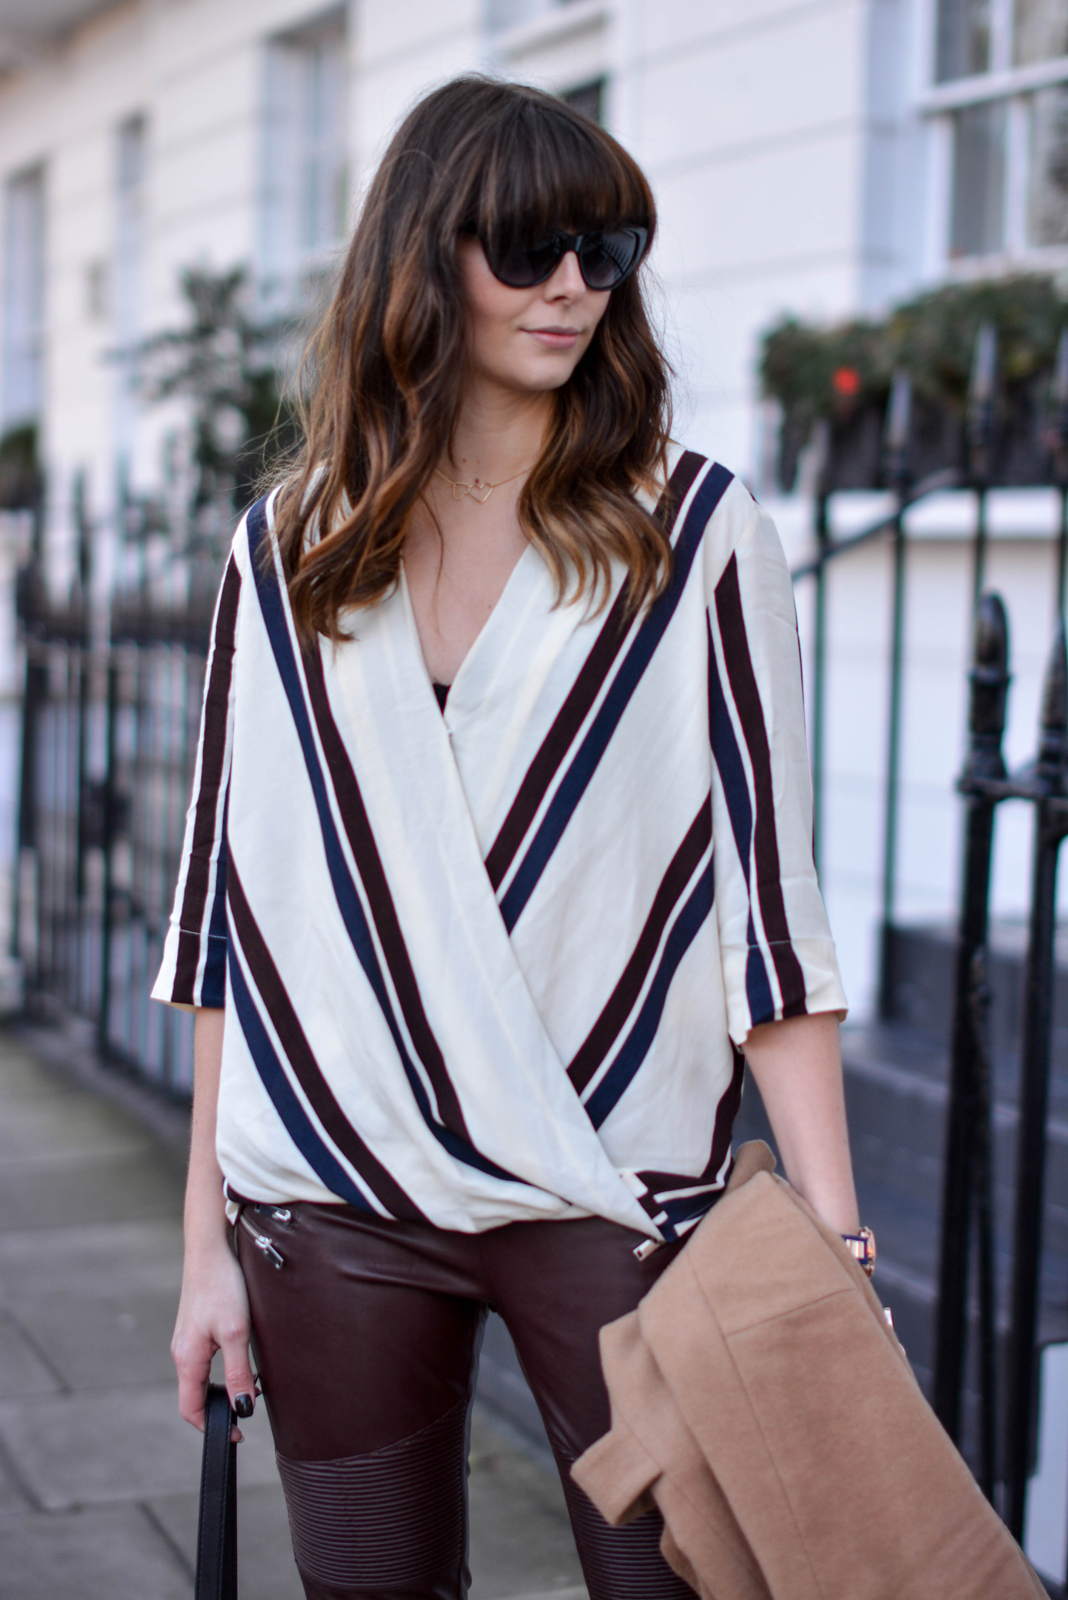 EJSTYLE - Topshop stripe drapped shirt top, River Island camel coat, Zara burgundy biker trousers faux leather, OOTD, fashion blogger